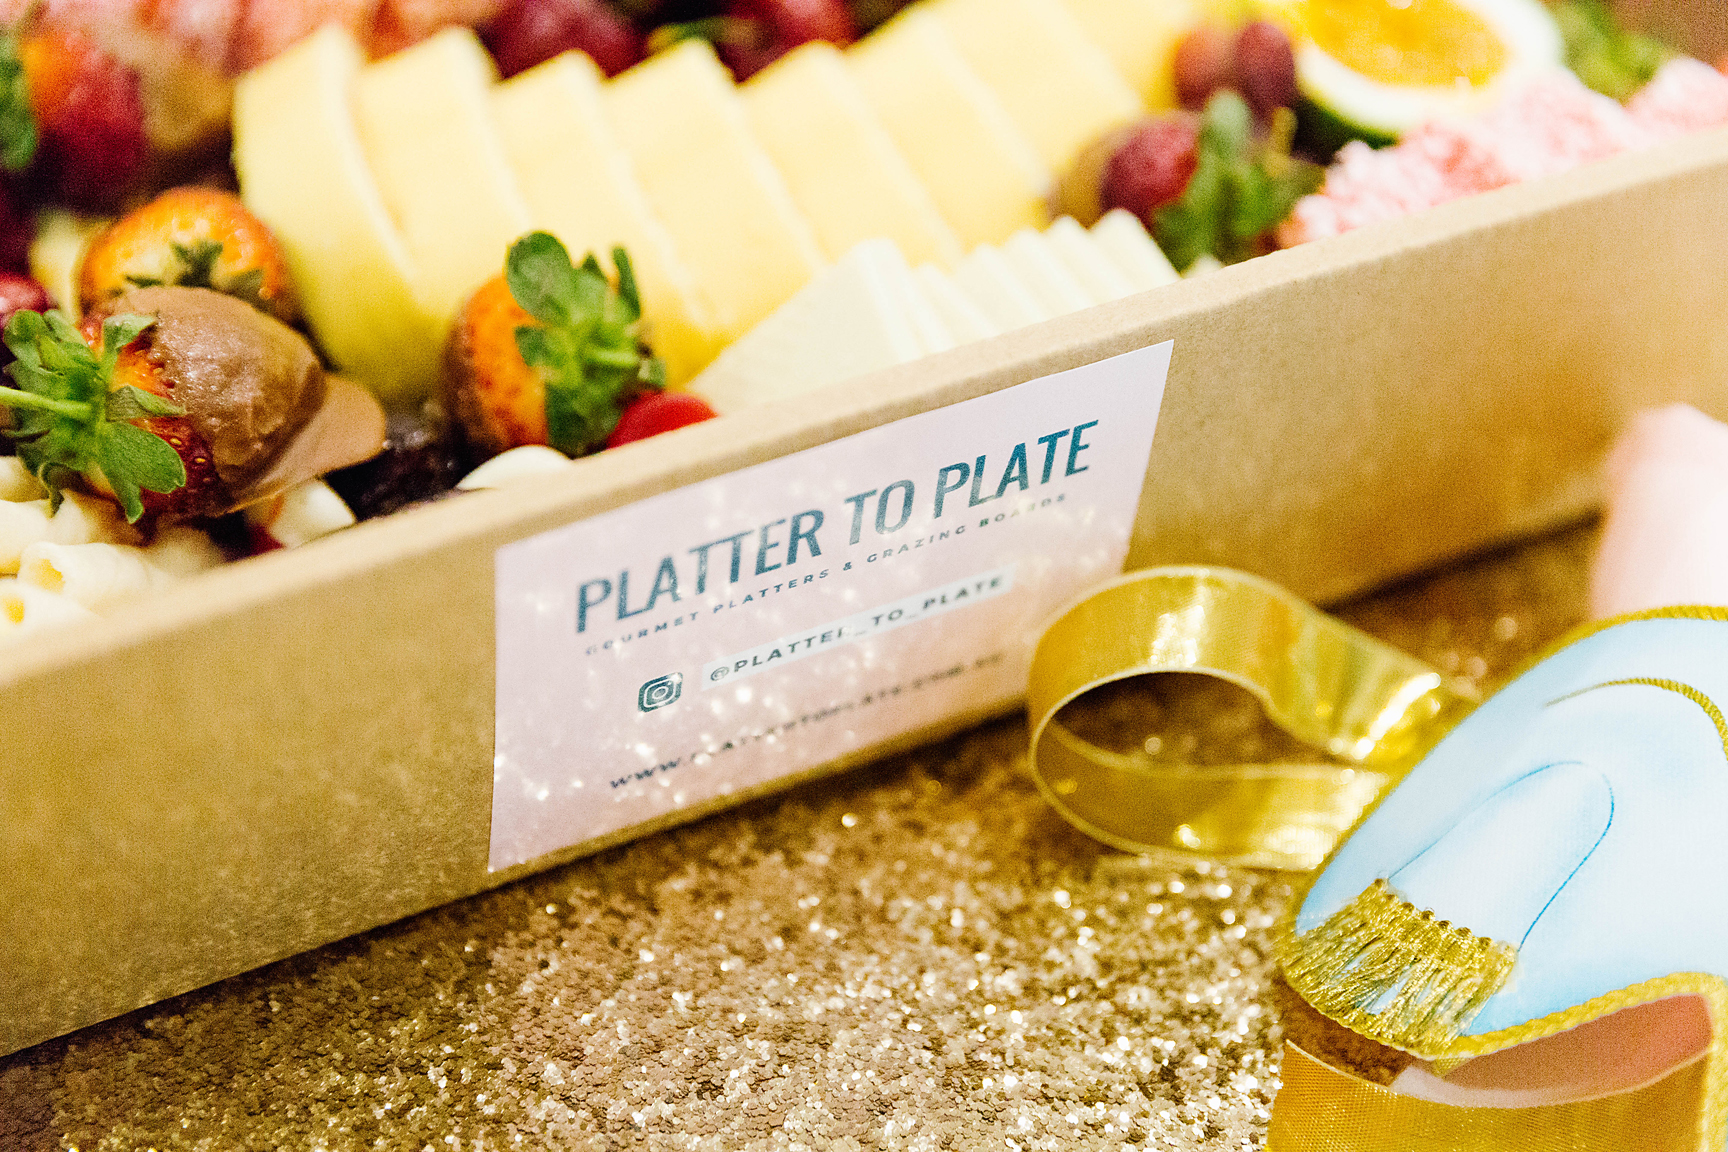 Platter box by Platter to Plate. Photography by Poppy & Sage Photography.